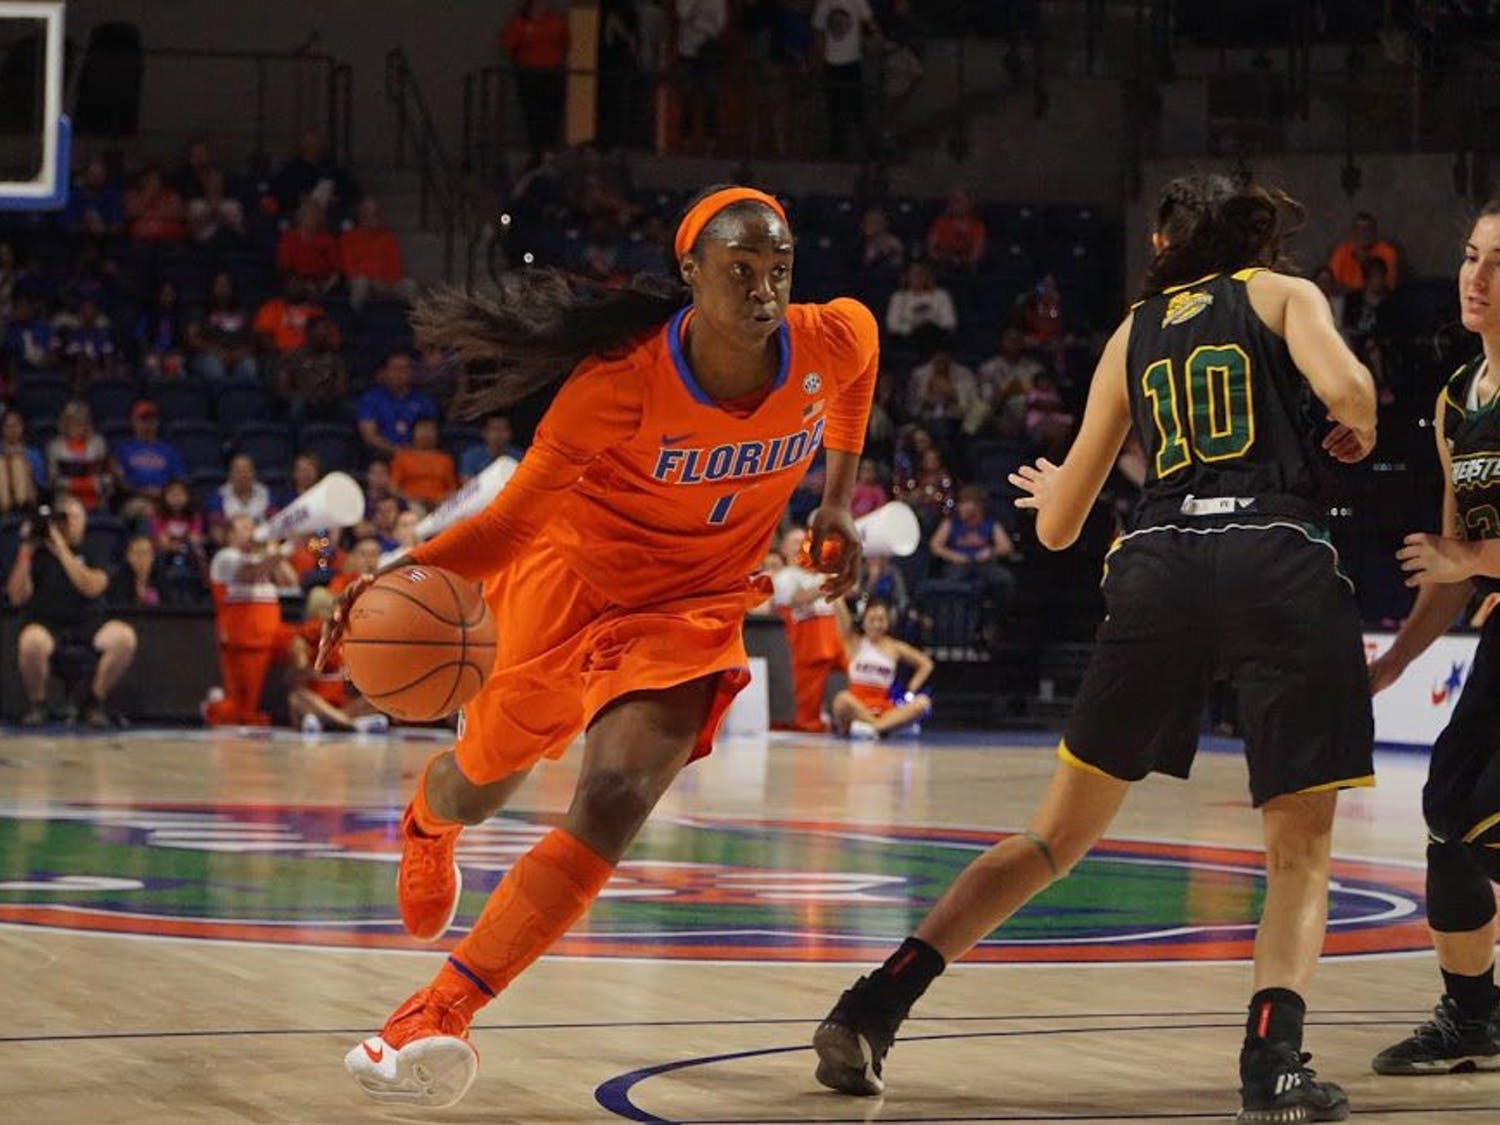 UF forward Ronni Williams dribbles the ball during Florida's 102-51 win over Southeastern Louisiana on Dec. 28, 2016, in the O'Connell Center.